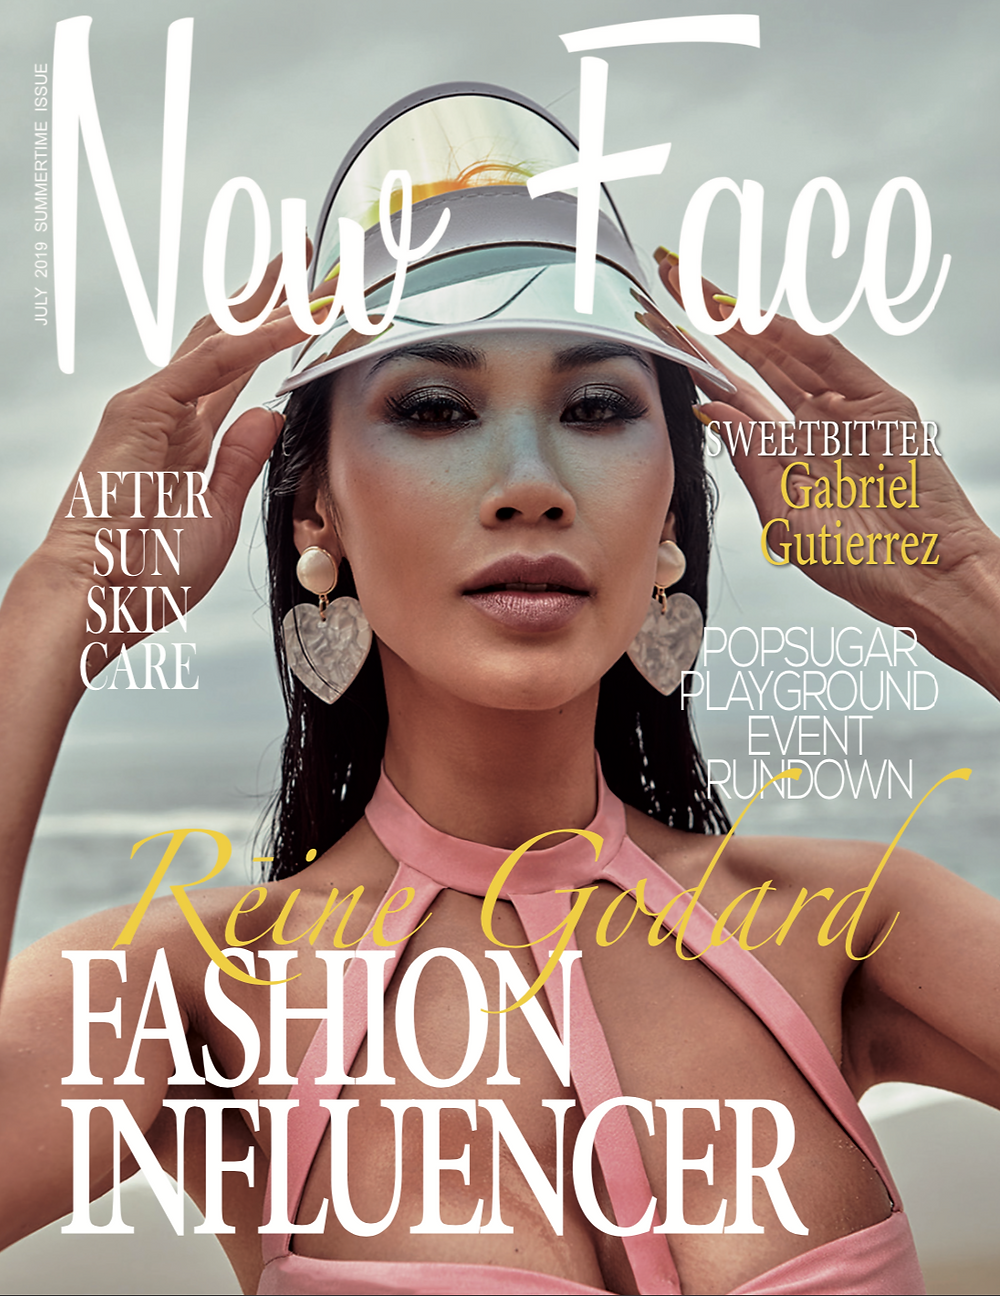 Claire Reine Godard on the cover of the July issue of New Face Magazine in a translucent visor and strappy pink bikini top.